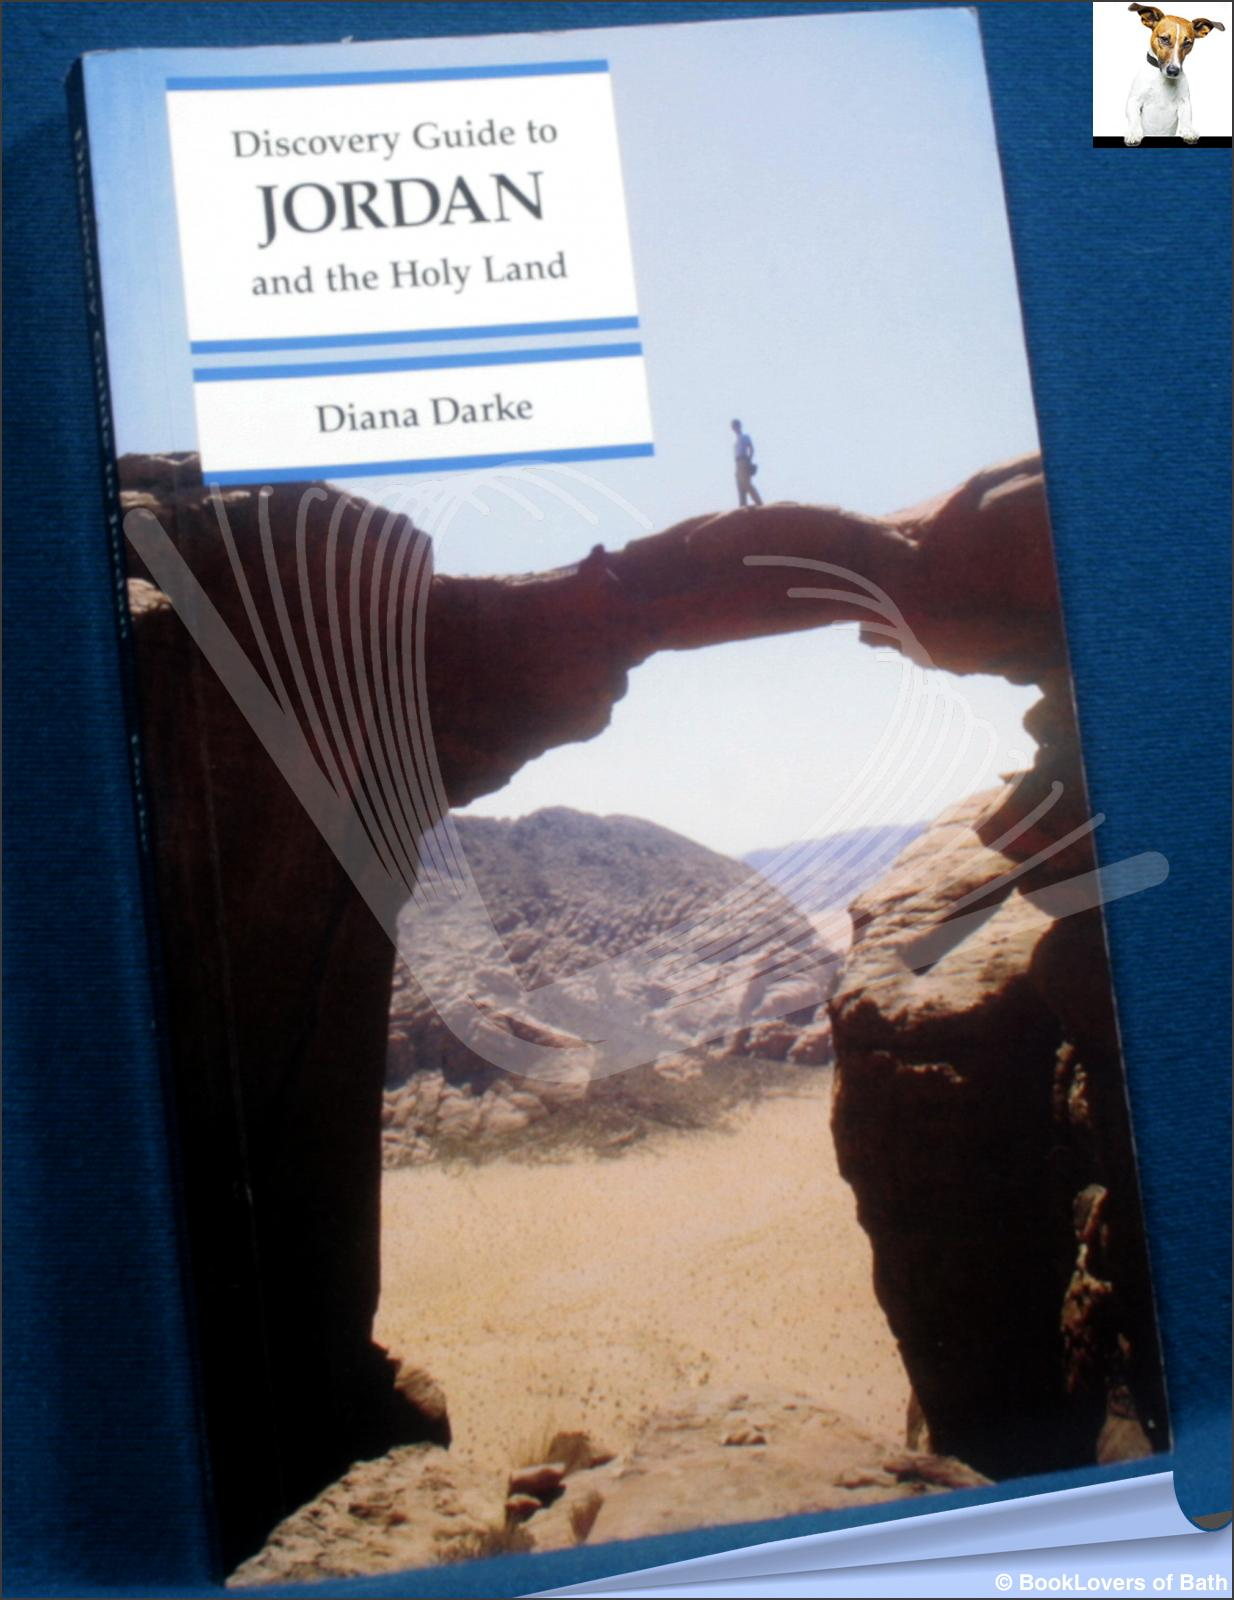 Discovery Guide to Jordan and the Holy Land  - Diana Darke